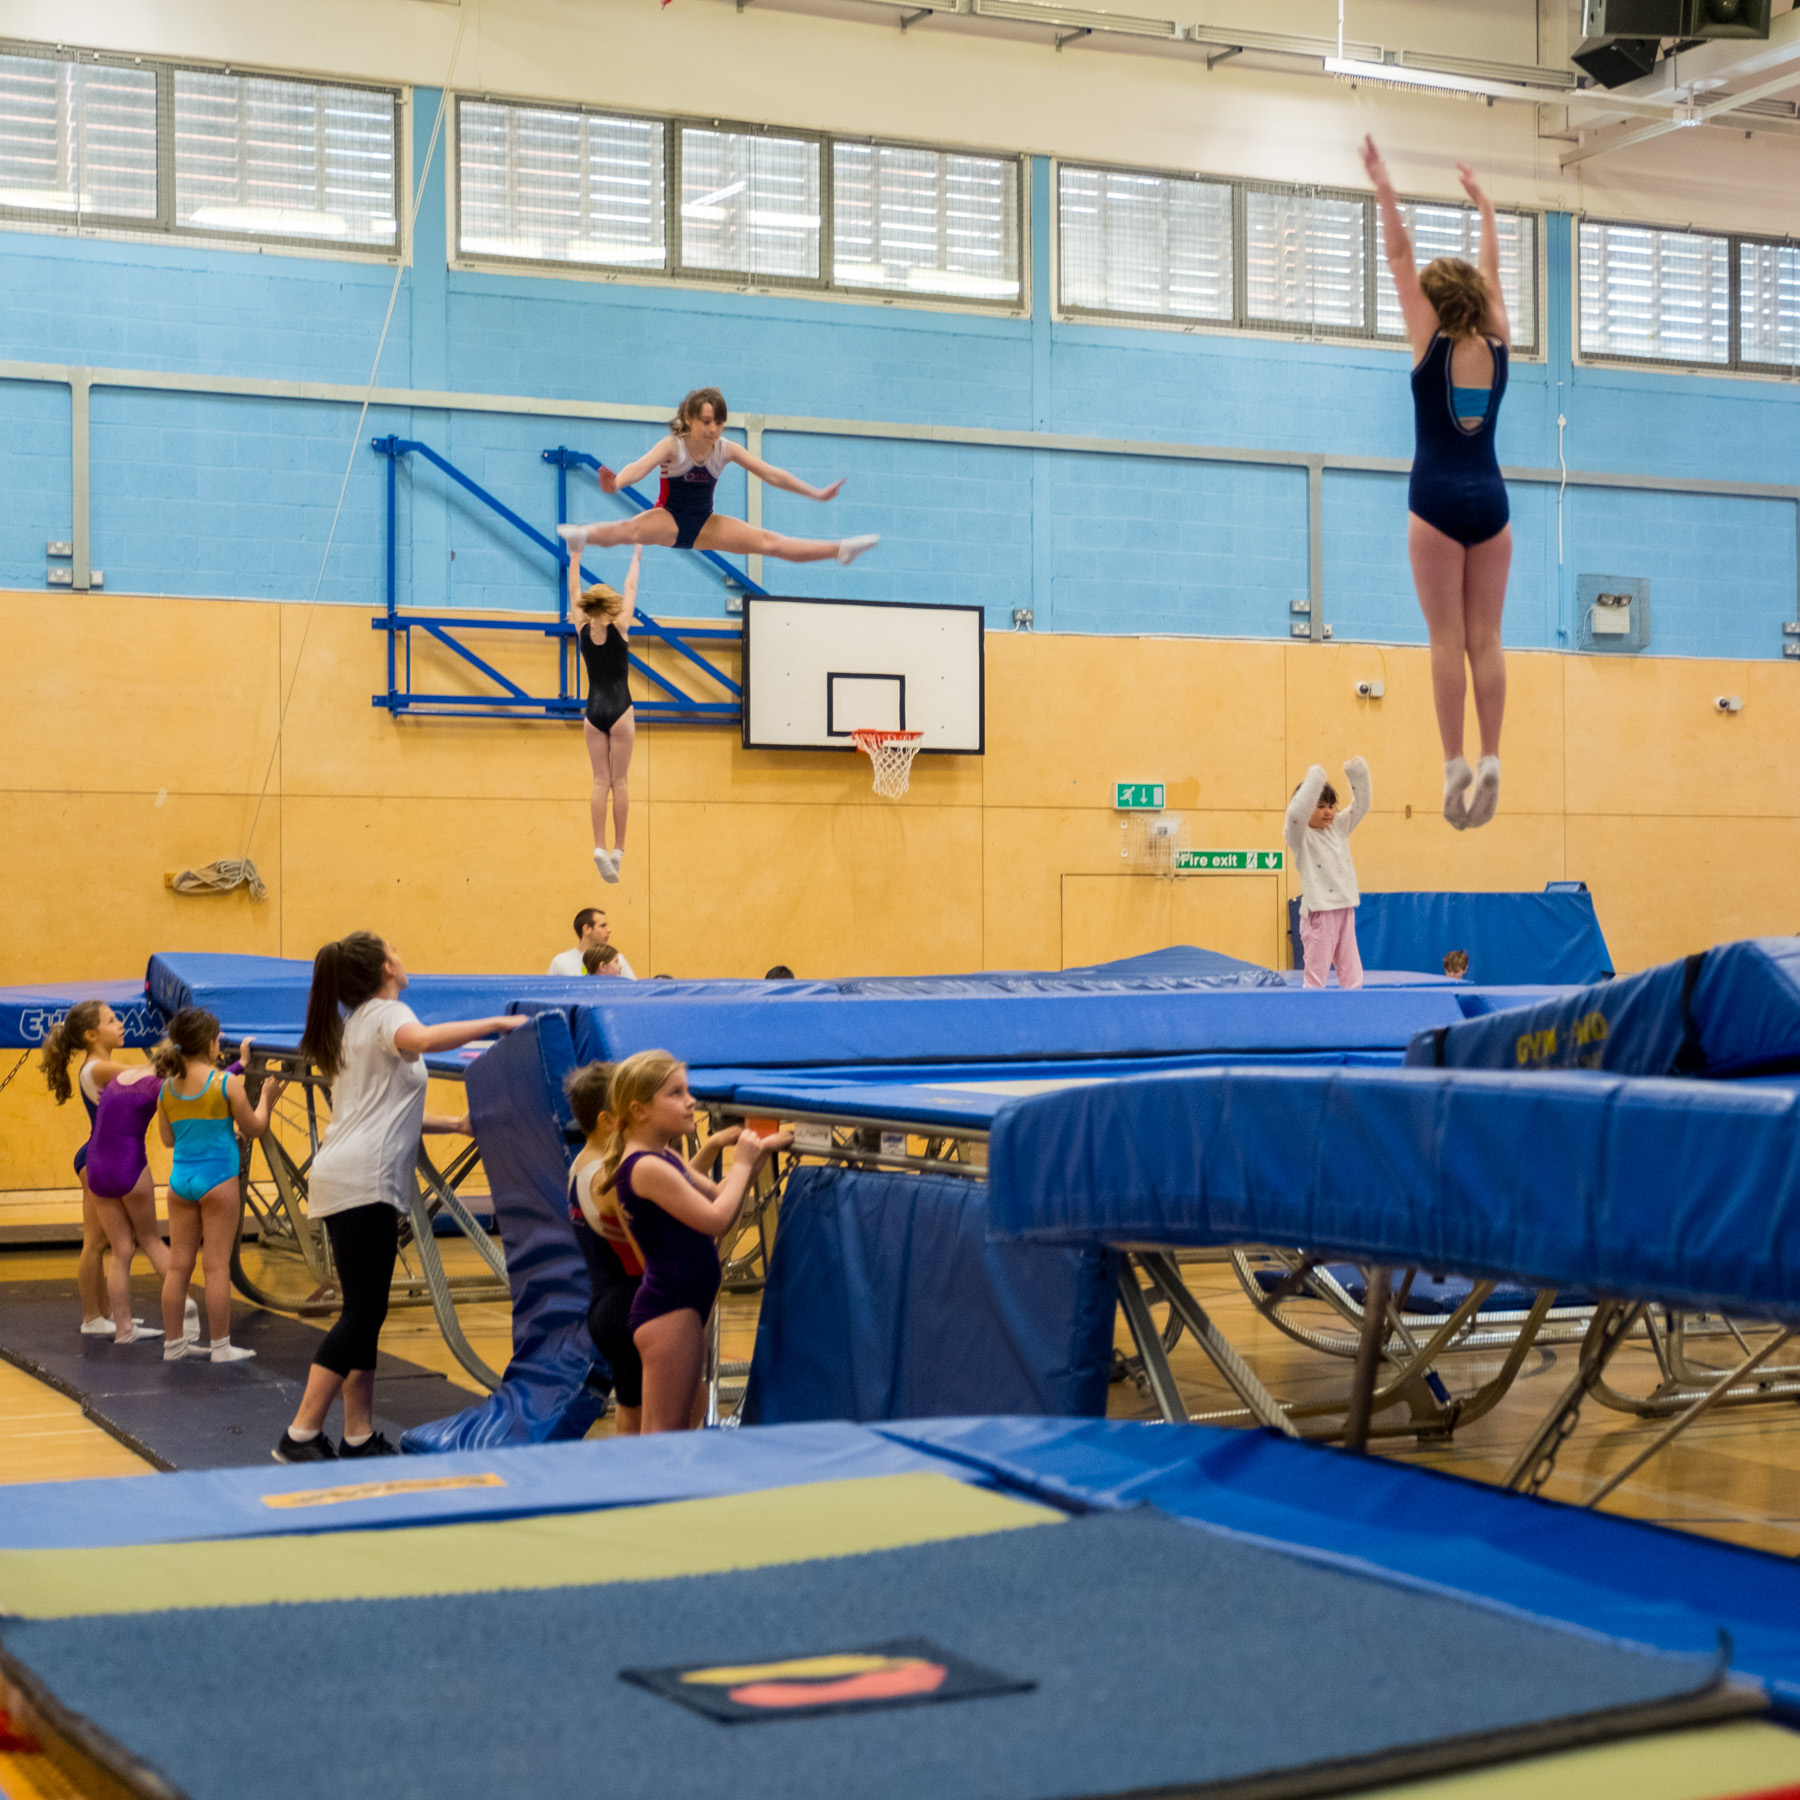 3 trampoline classes in action at once